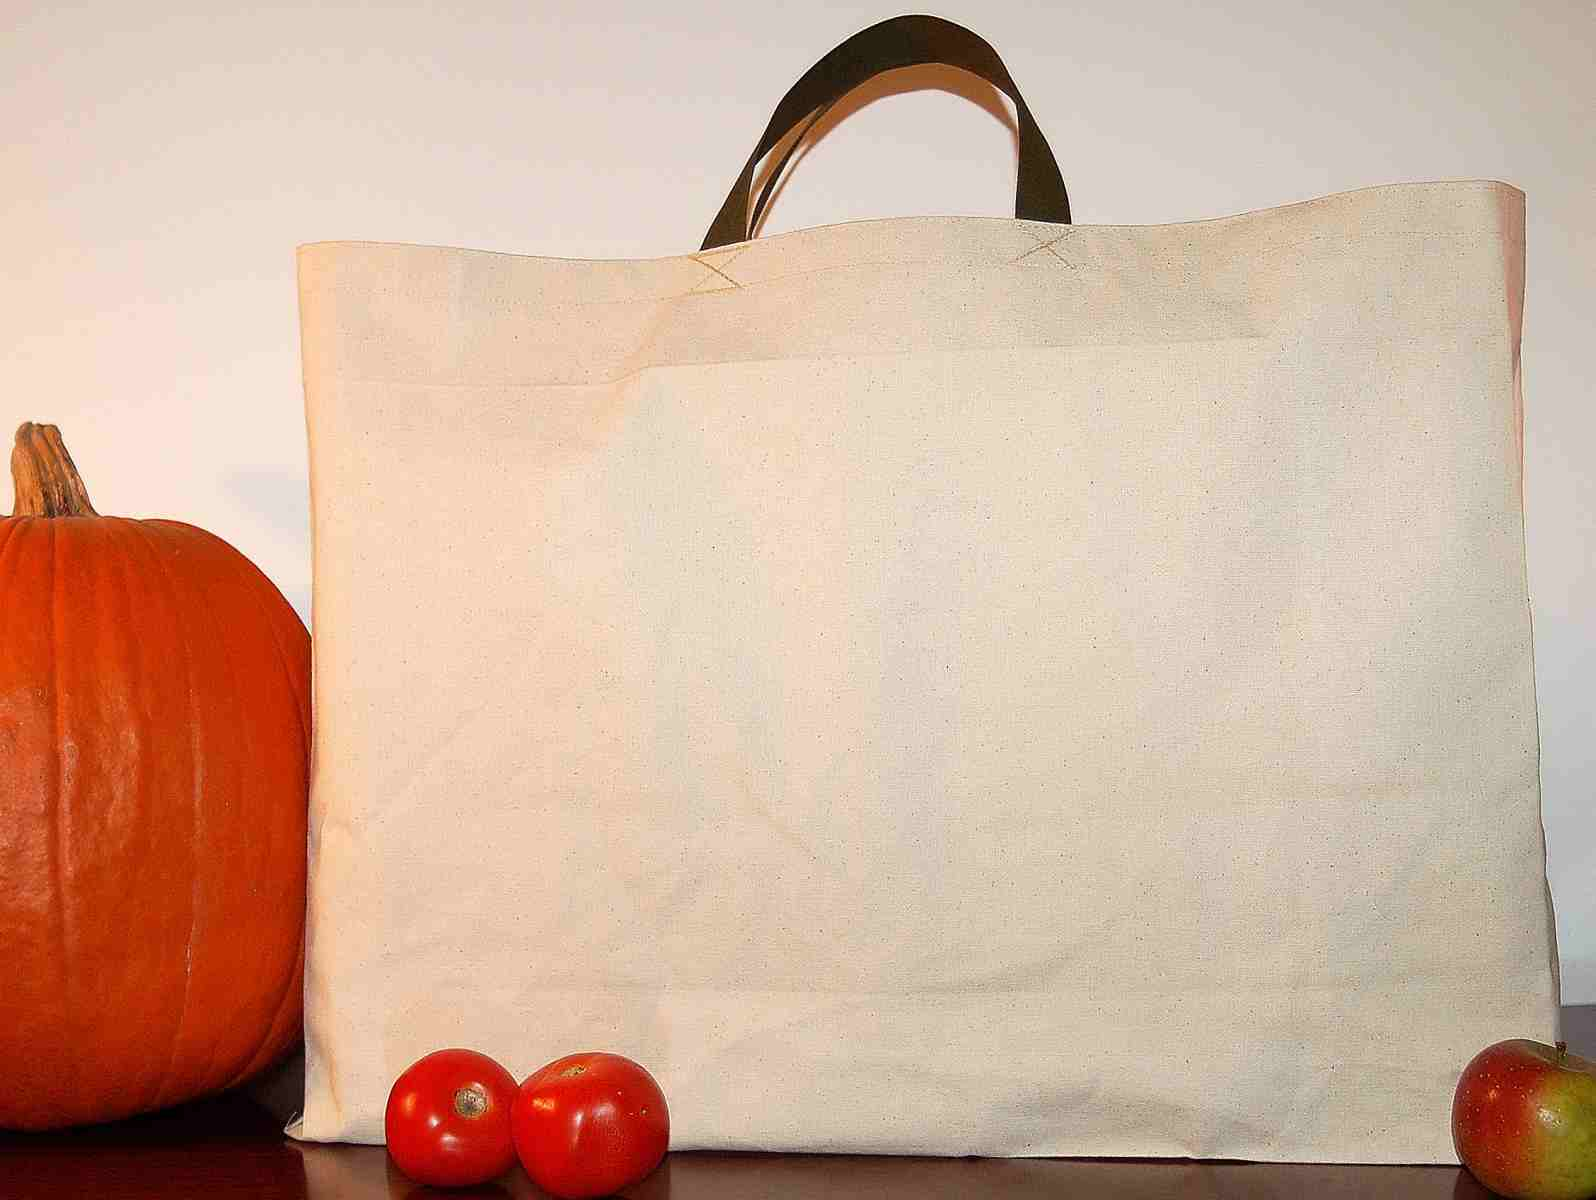 Turtlecreek USA Canvas Grocery Bags | Shopping Totes